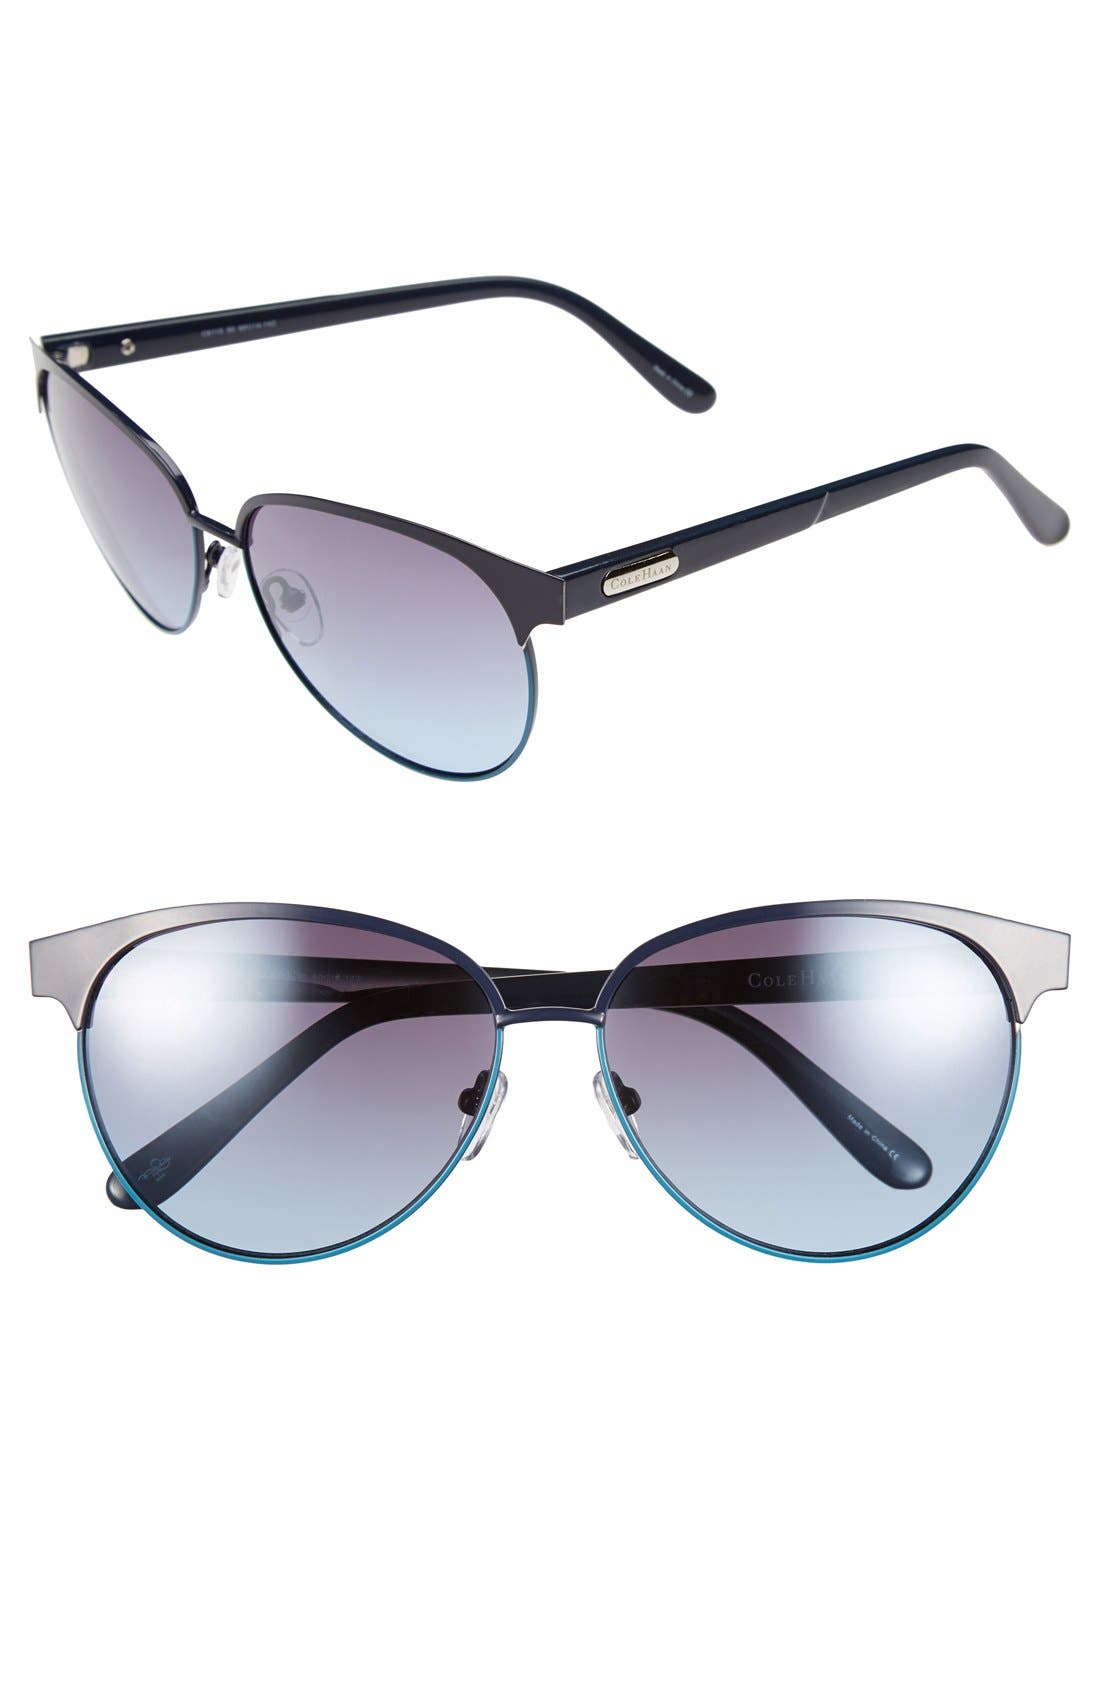 Main Image - Cole Haan 59mm Cat Eye Sunglasses